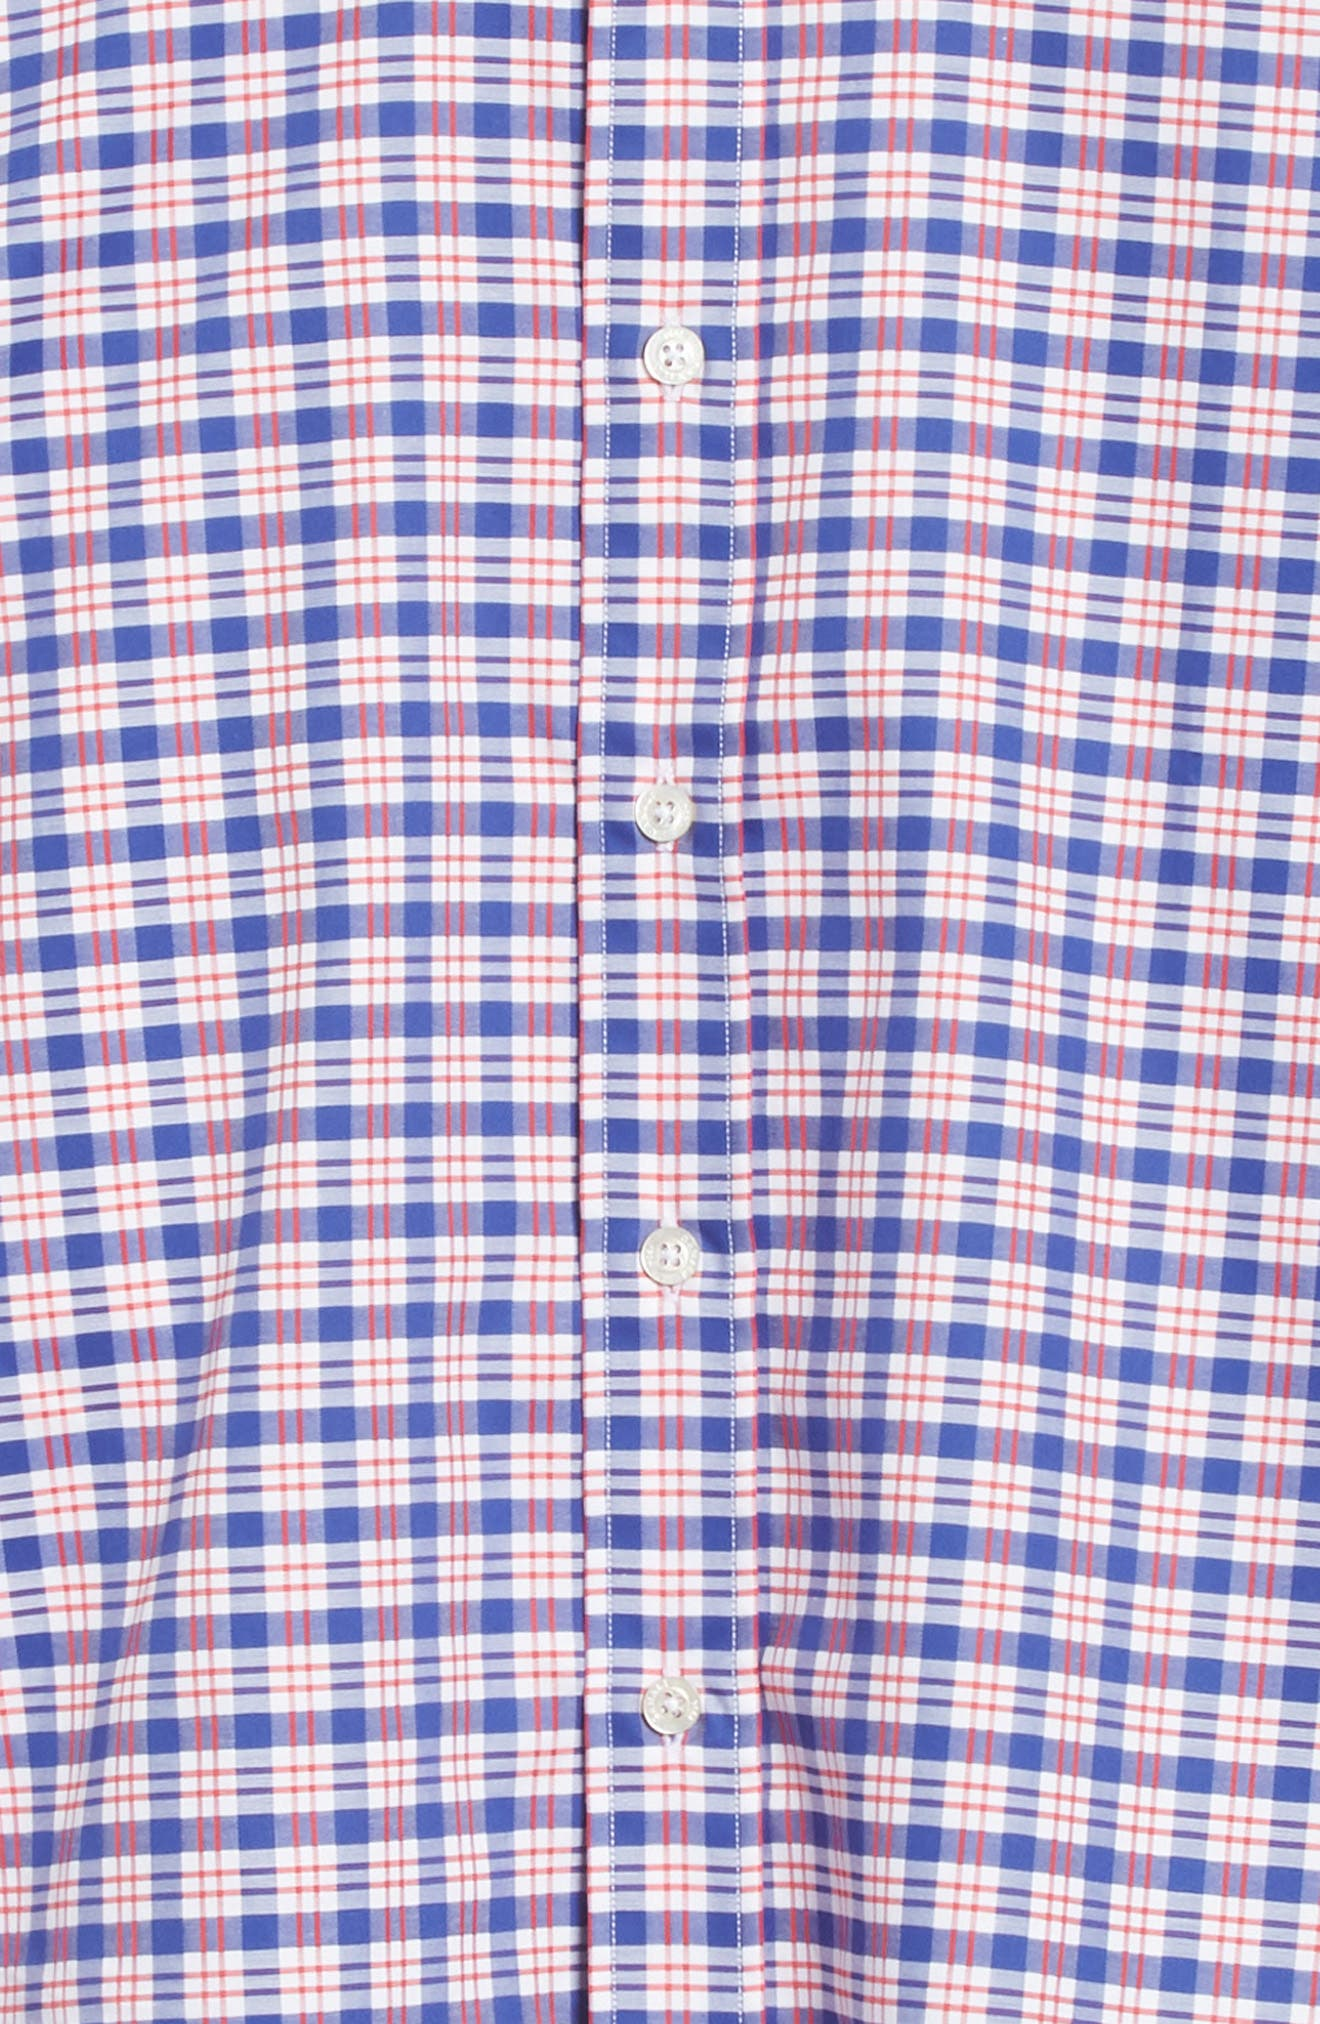 Regular Fit Plaid Sport Shirt,                             Alternate thumbnail 7, color,                             600